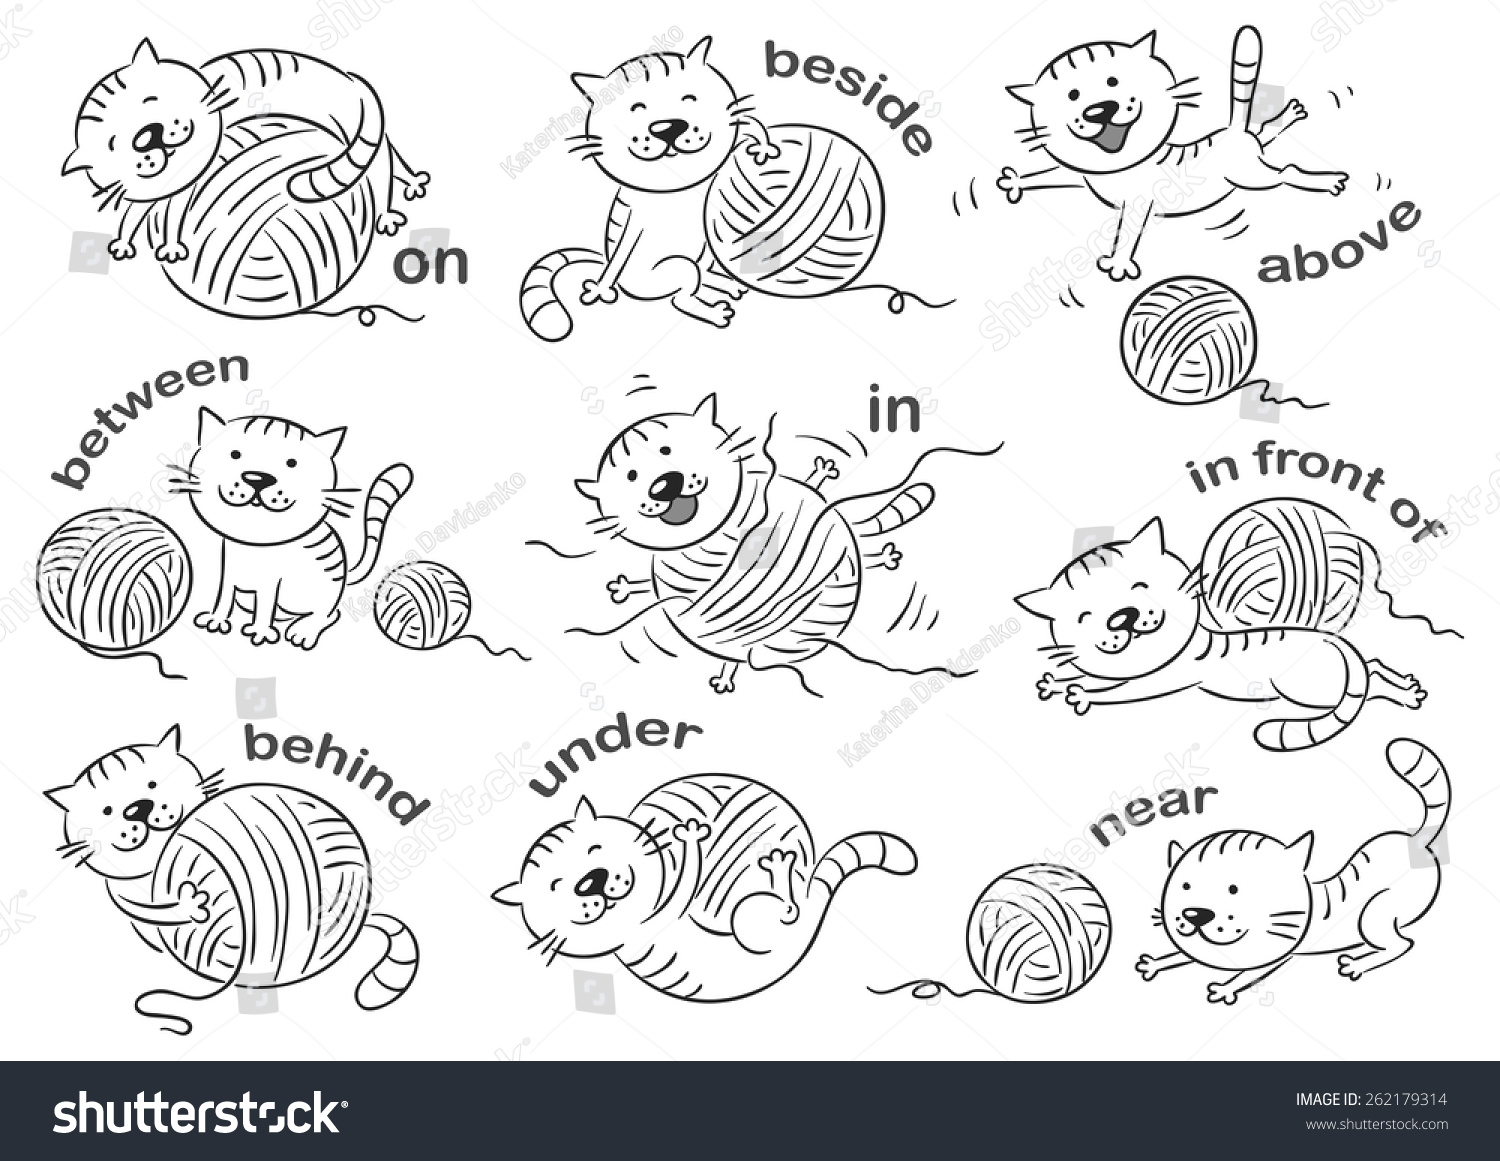 Cartoon Cat Different Poses Illustrate Prepositions Stock Vector